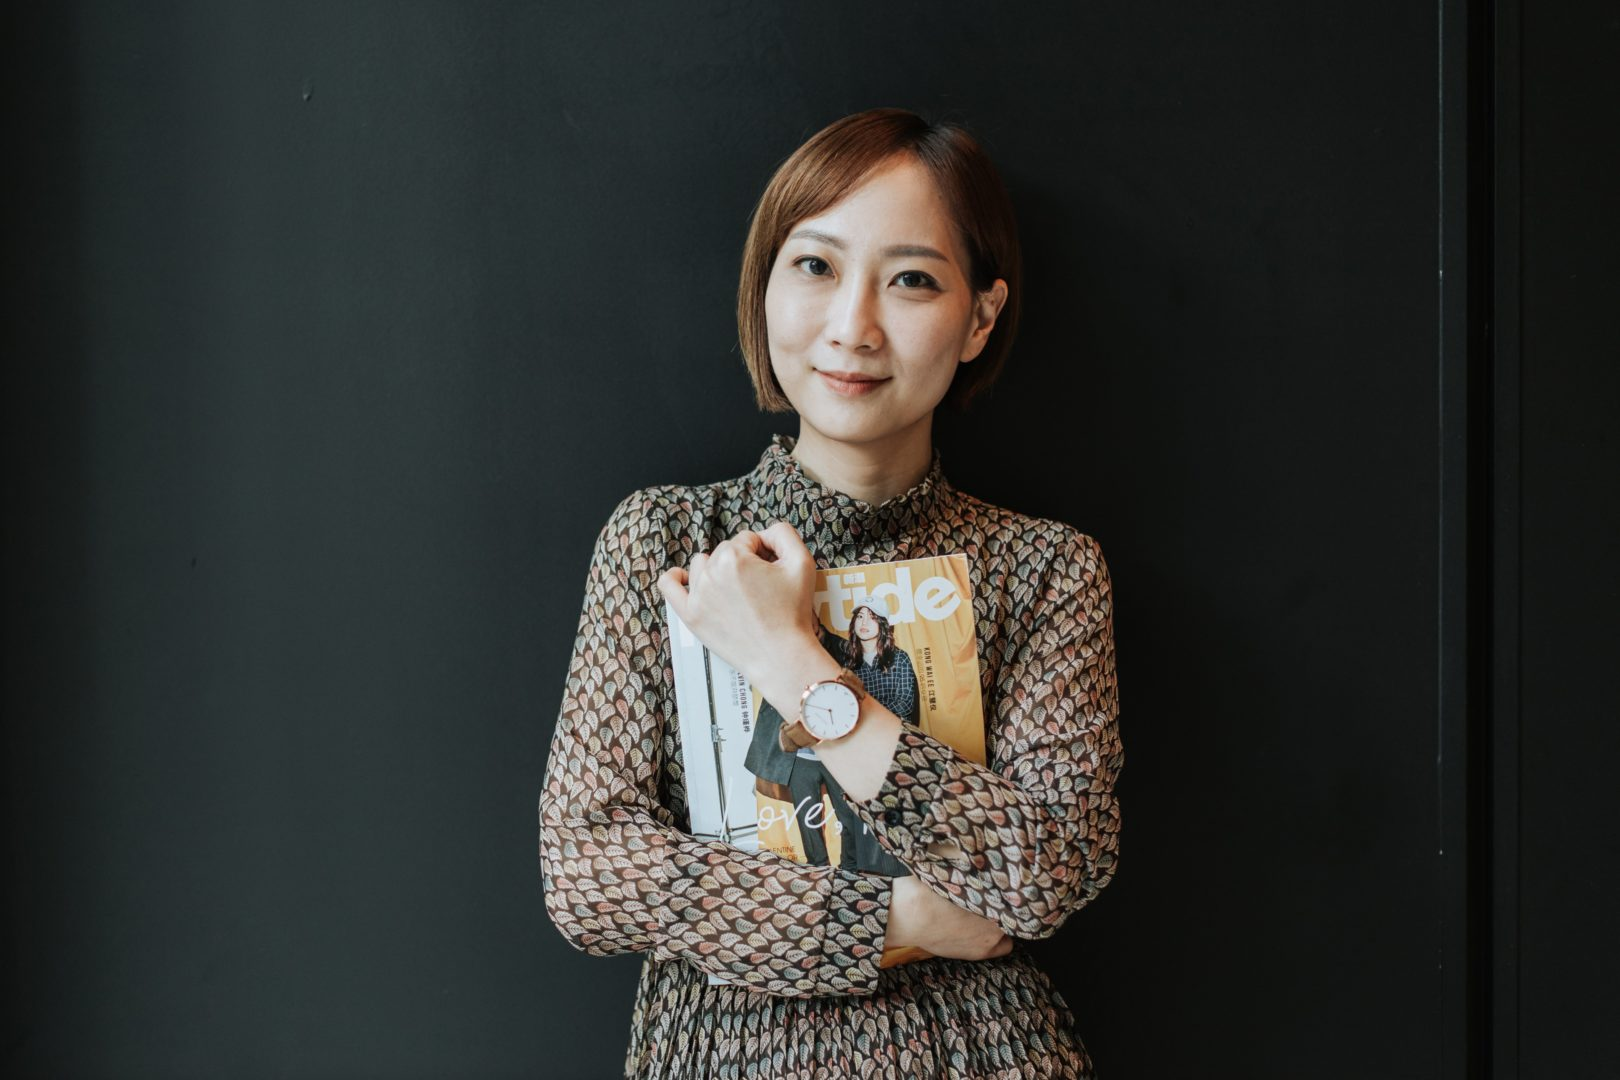 HAU MIN – THE TALENT WHO GOES WITH THE FLOW